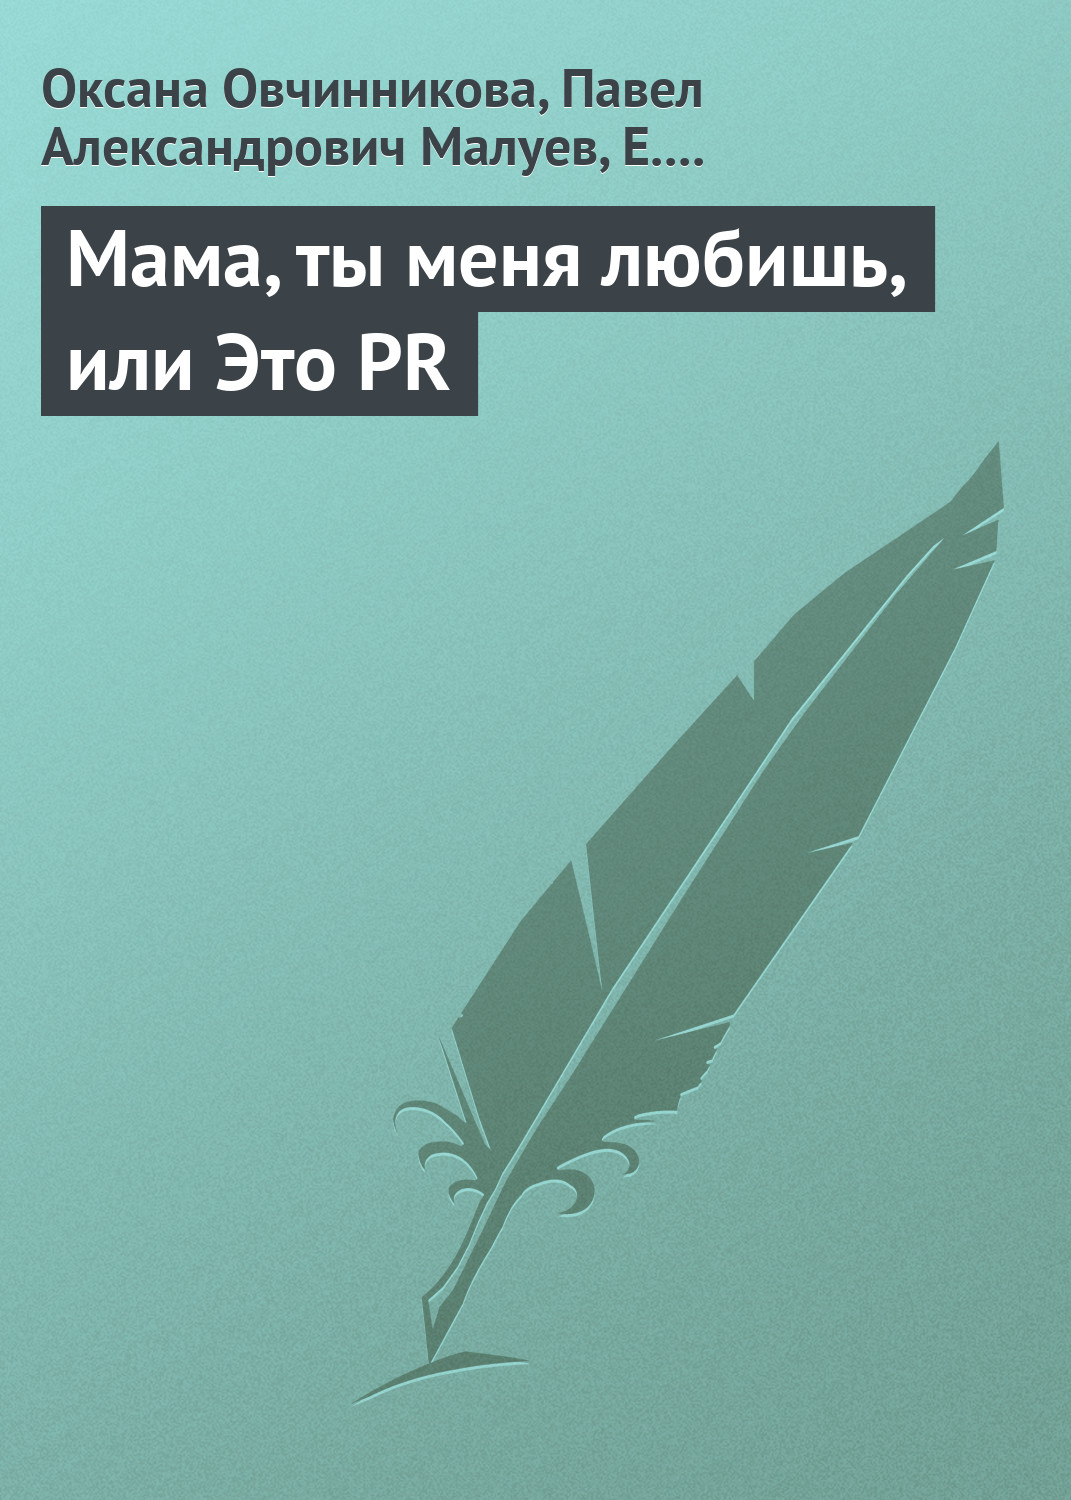 Оксана Овчинникова Мама, ты меня любишь, или Это PR silvia tony power performance multimedia storytelling for journalism and public relations